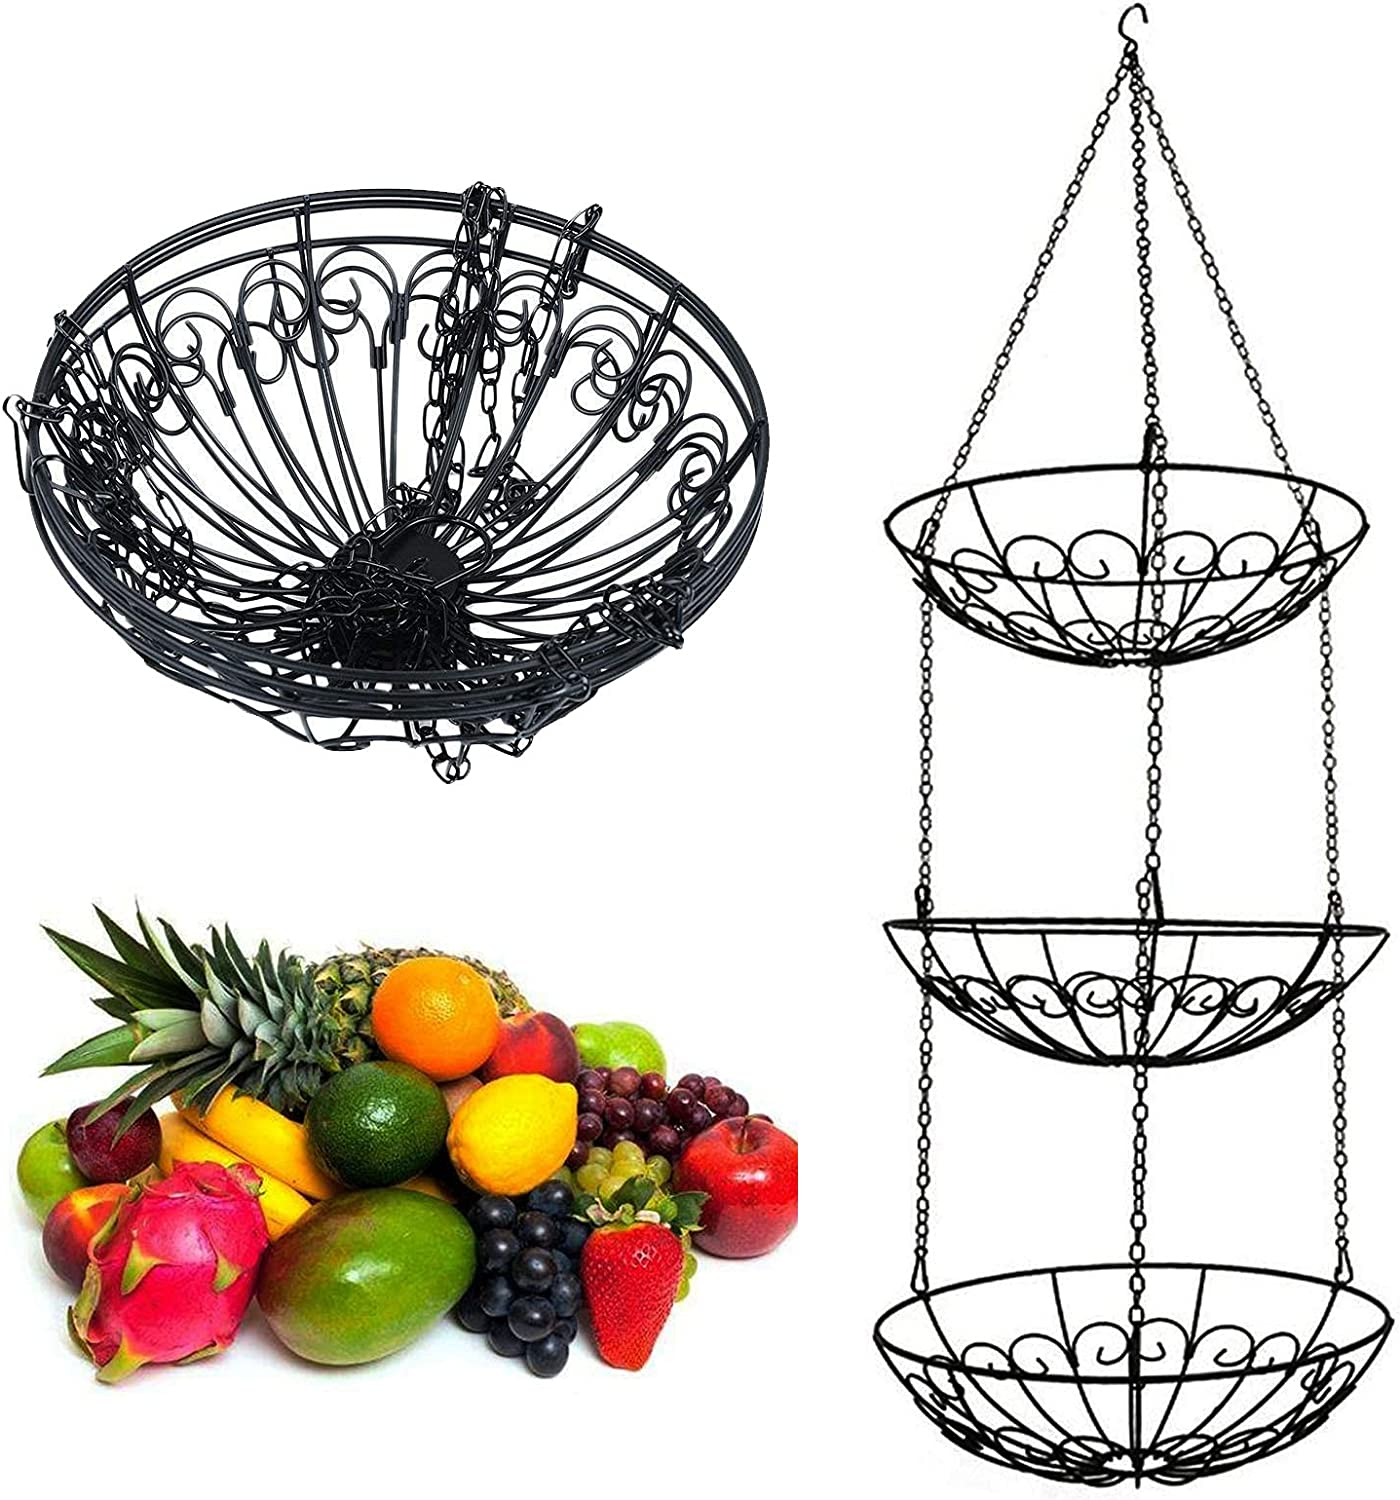 3 Tier Free Shipping Super special price Cheap Bargain Gift Hanging Fruit Basket Kitchen Or Heavy Storage Duty